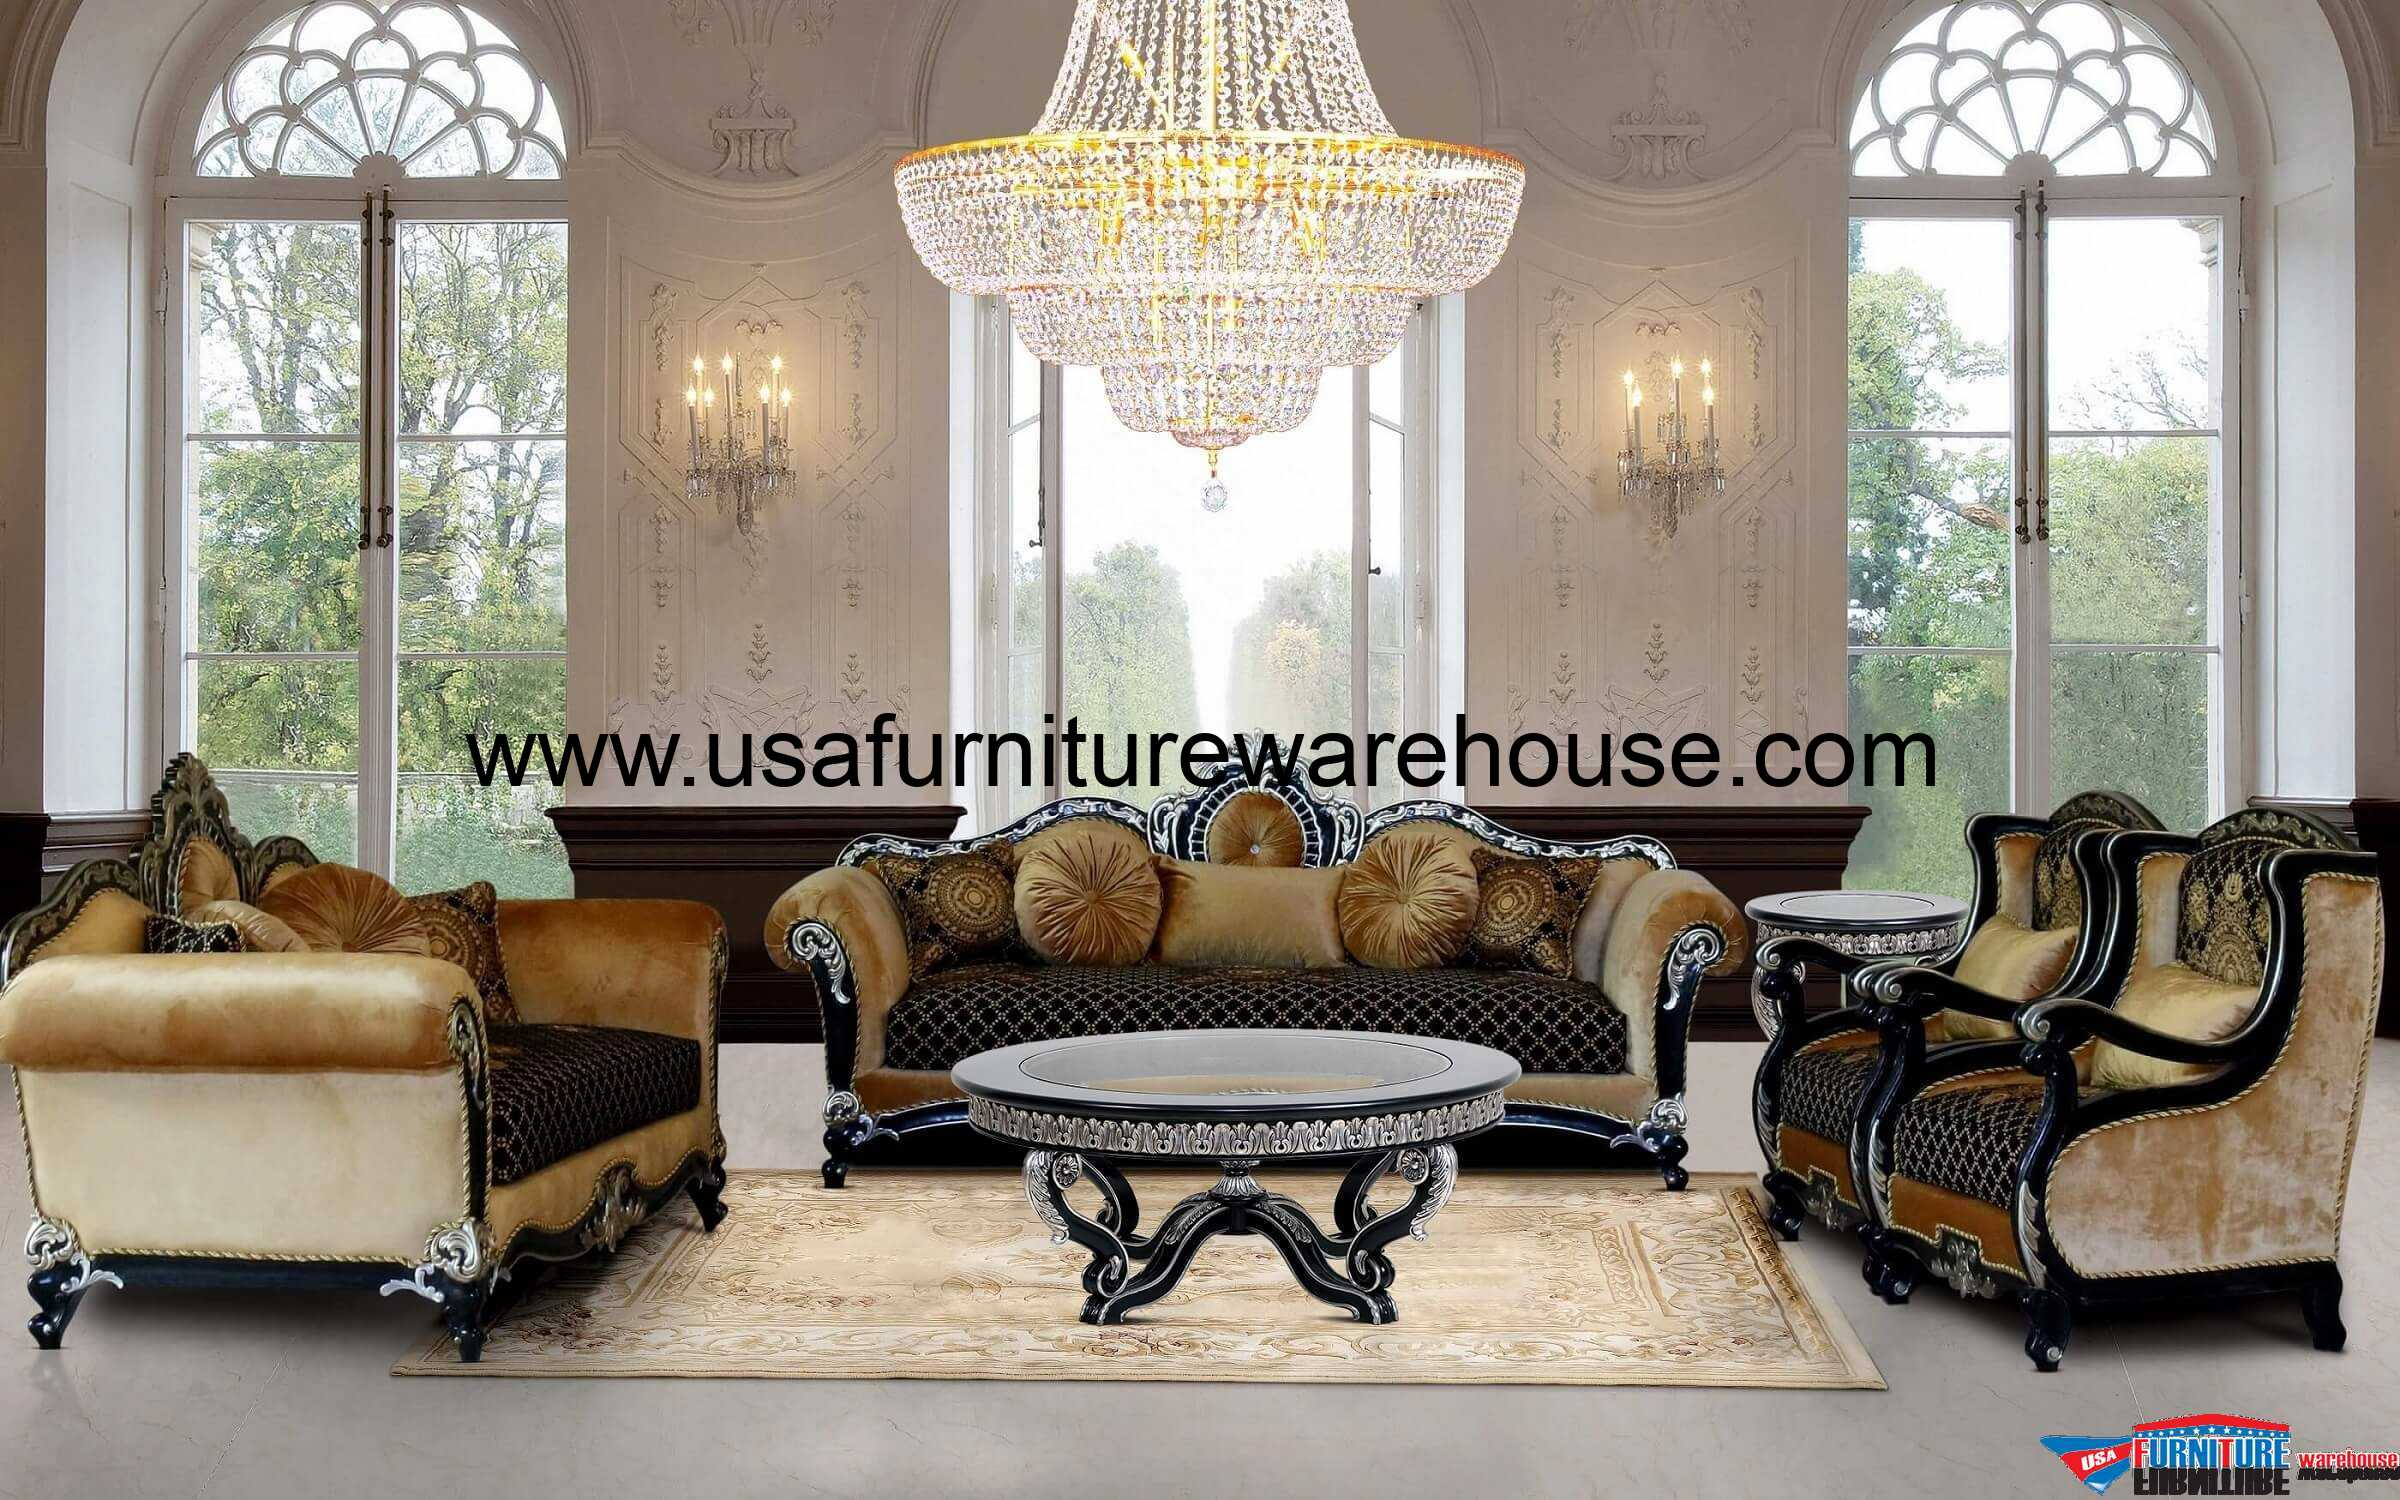 European furniture raffaello sofa set